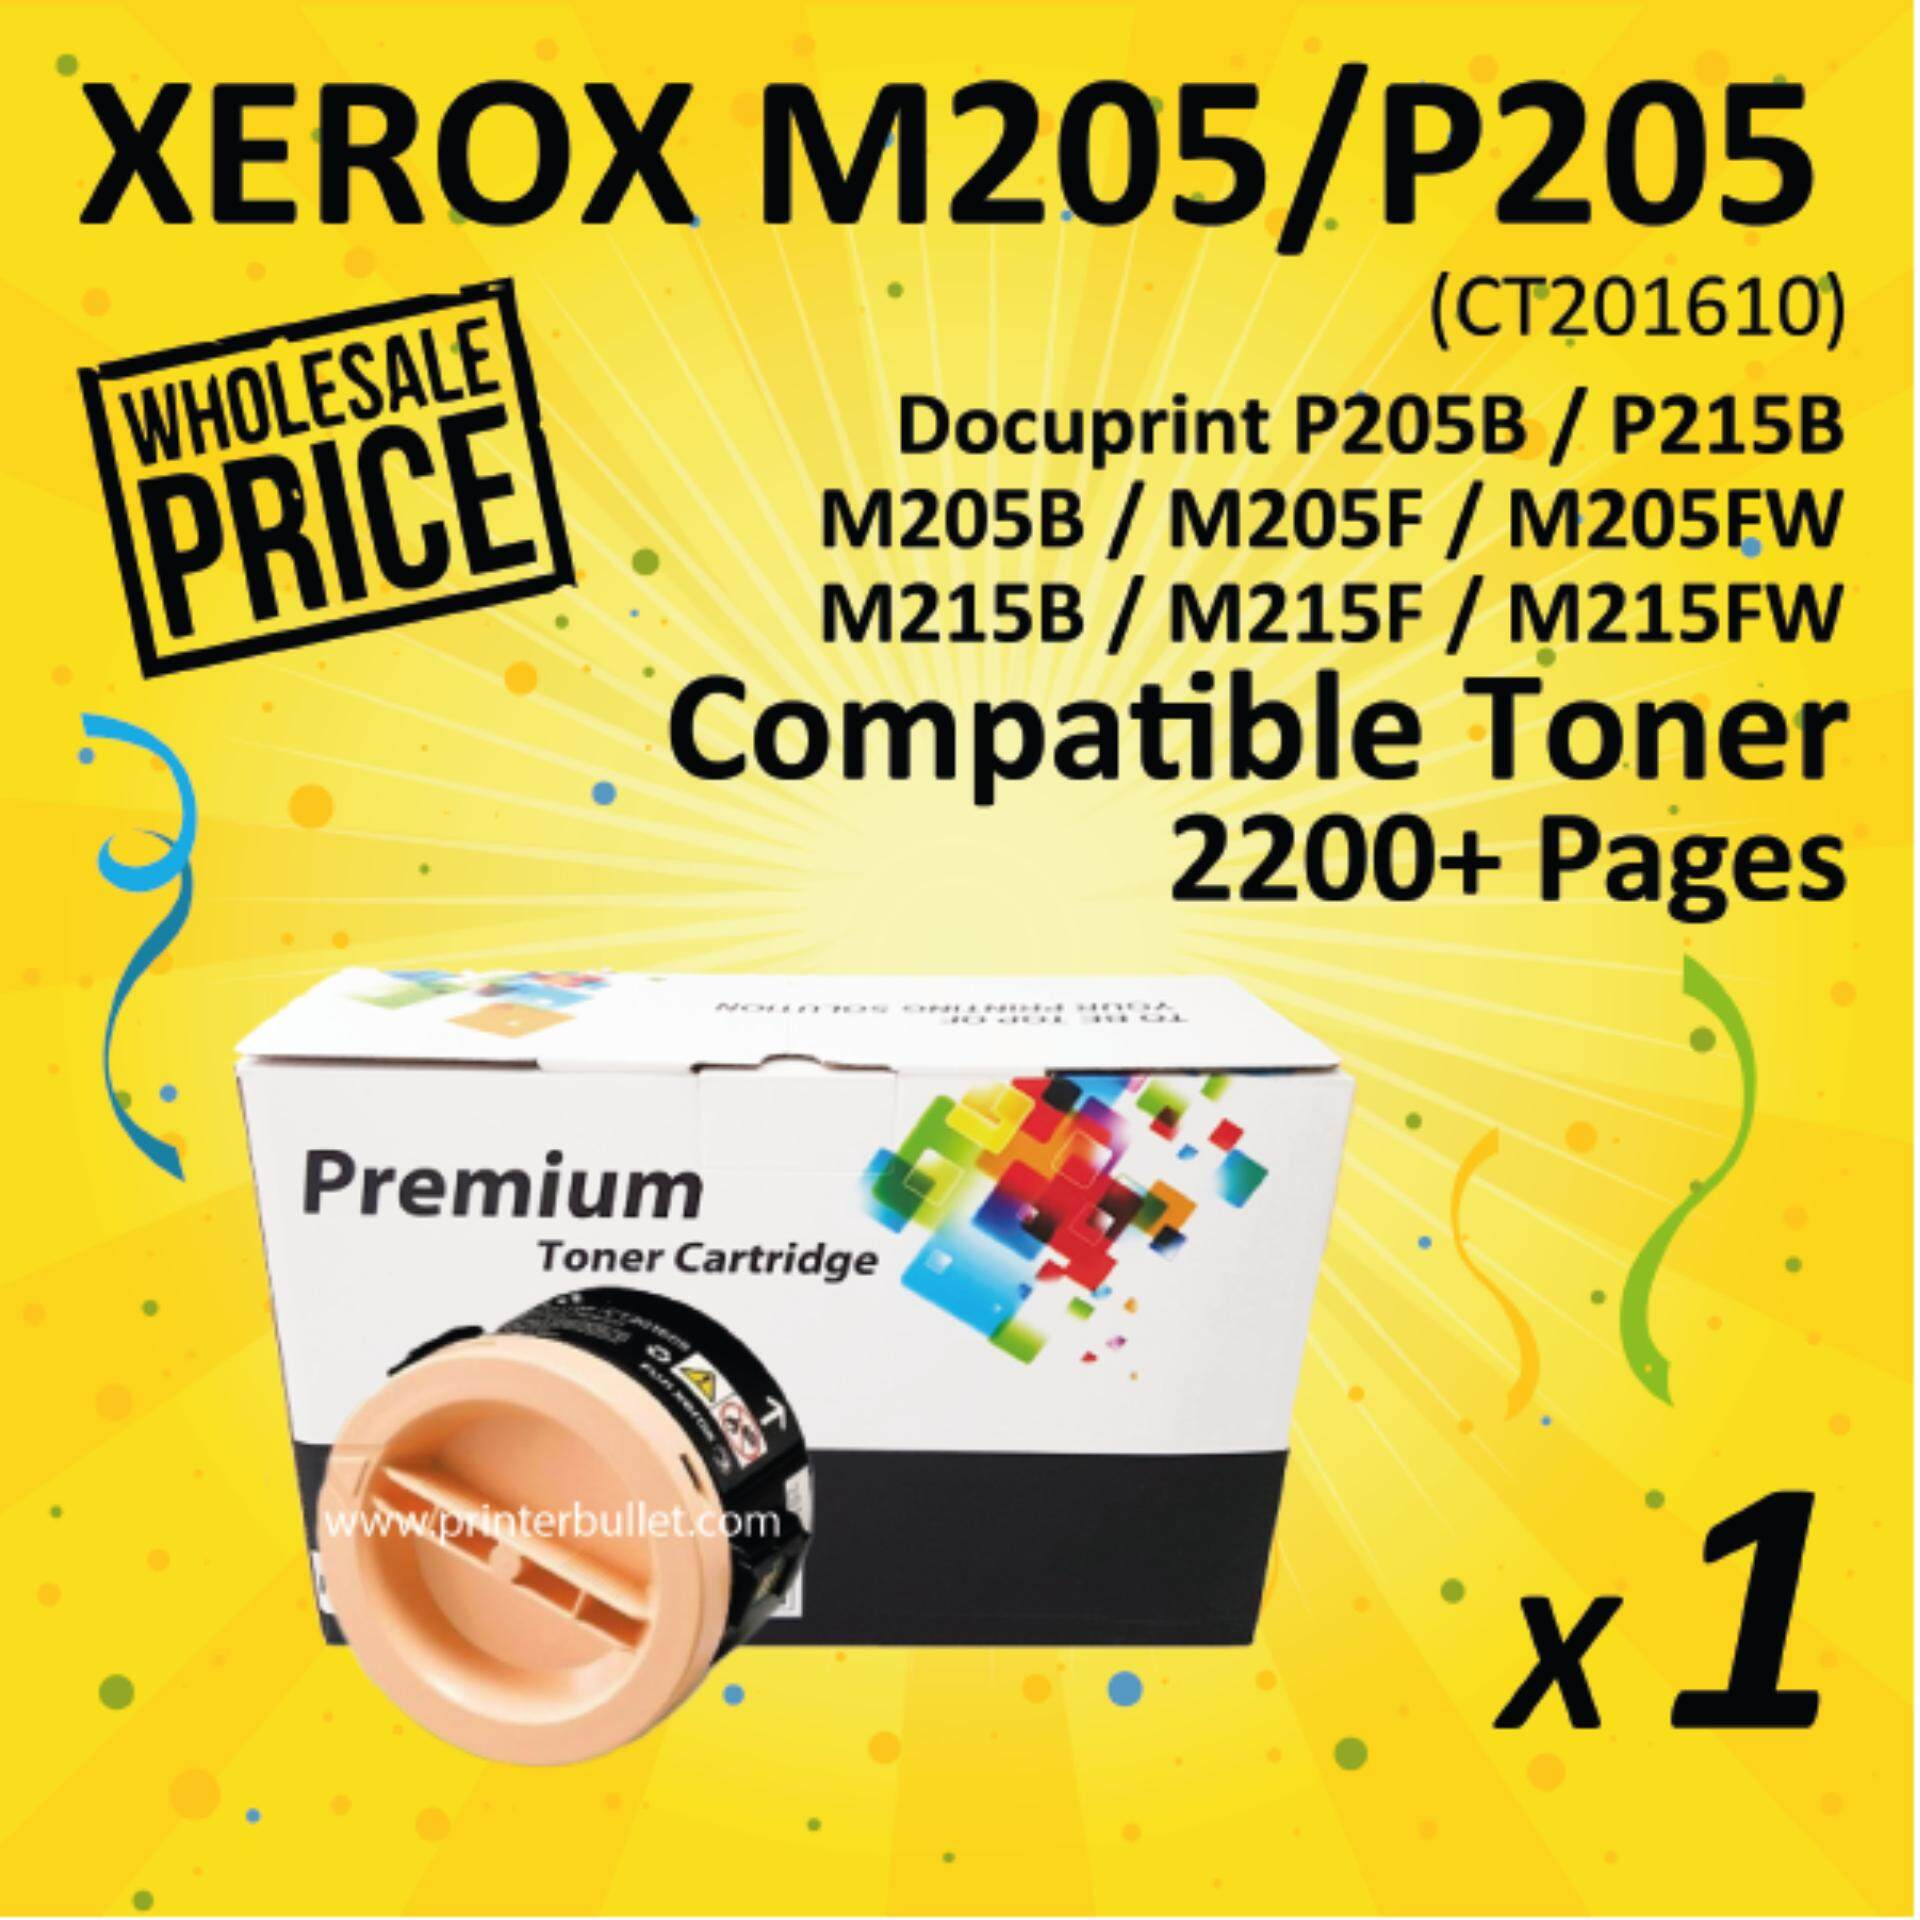 Fuji Xerox P205 / M205 / M215 / M205b / M205f / M205fw / M205df / M215b / M215fw / P205b / P215b / CT201610 High Quality Compatible Toner Cartridge